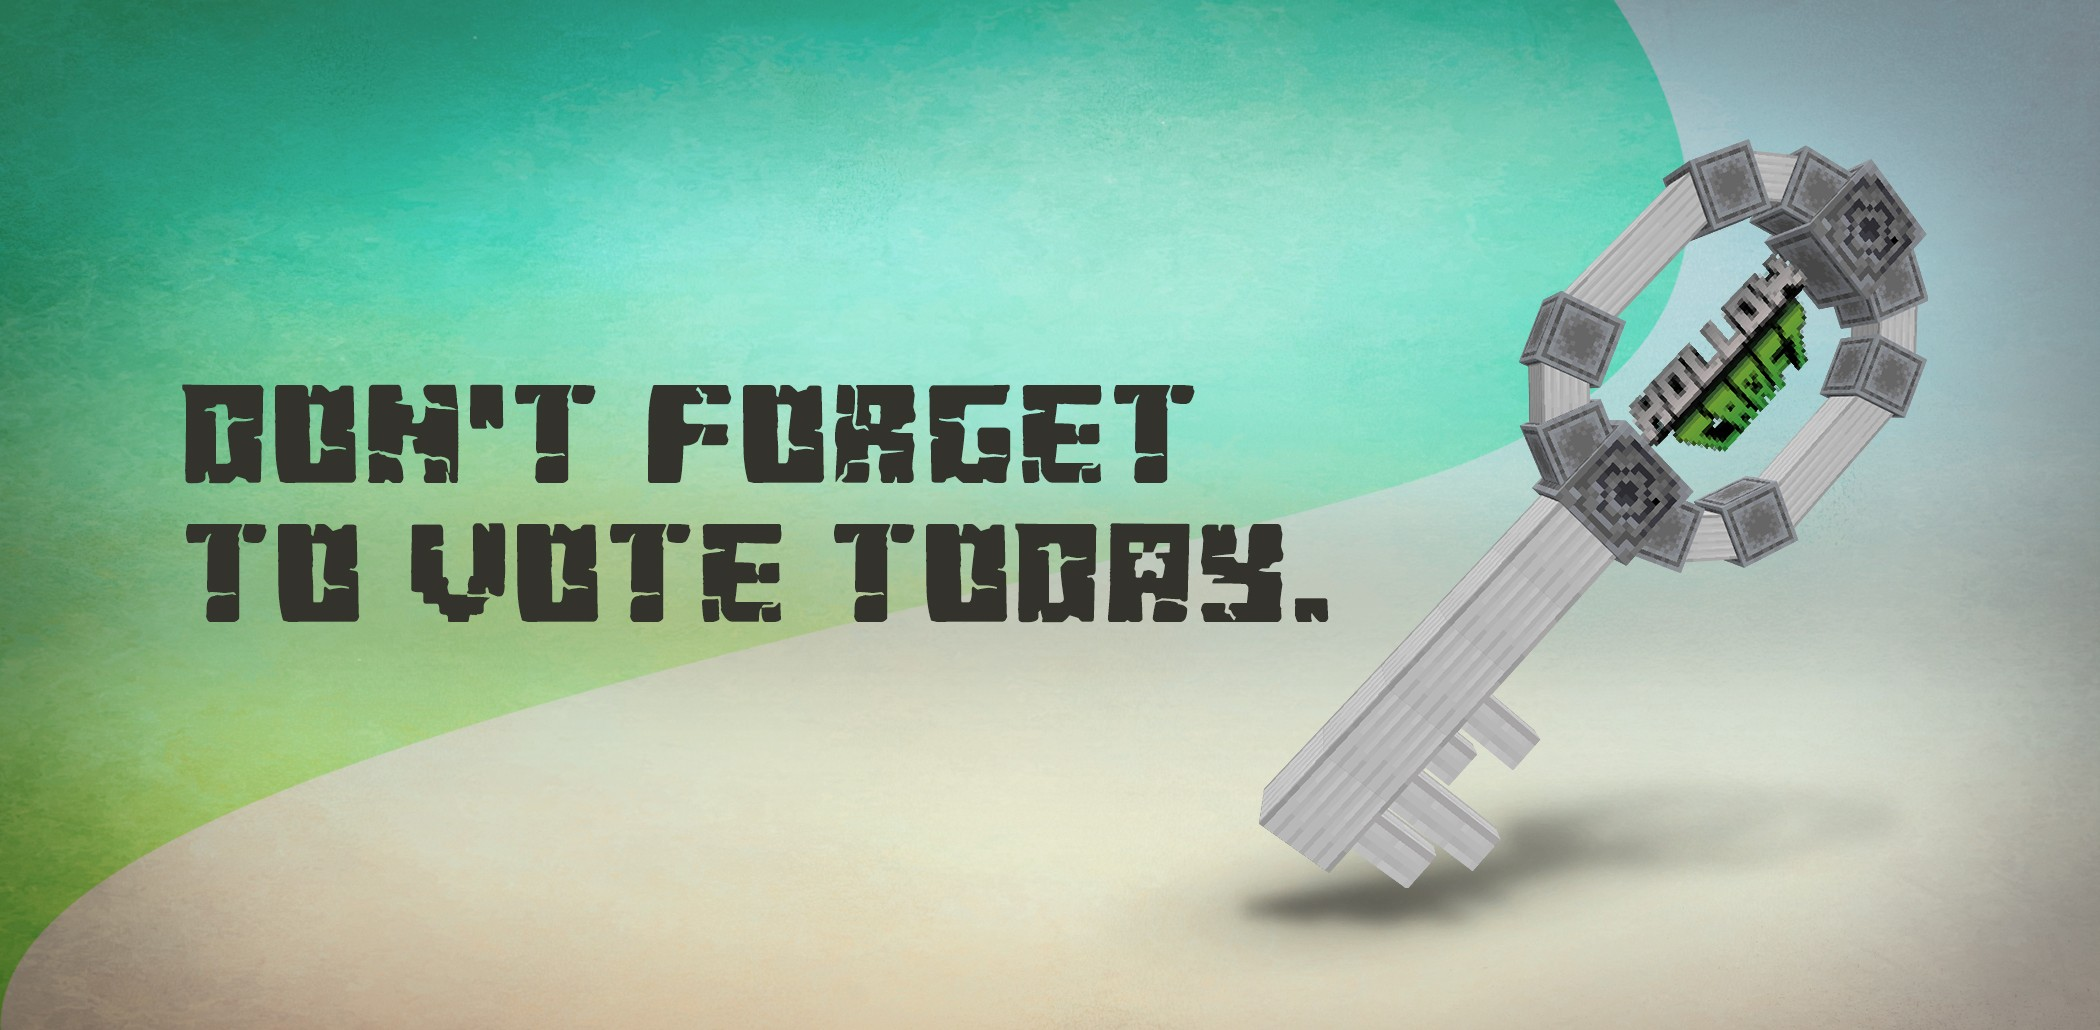 Vote For Hollow Craft